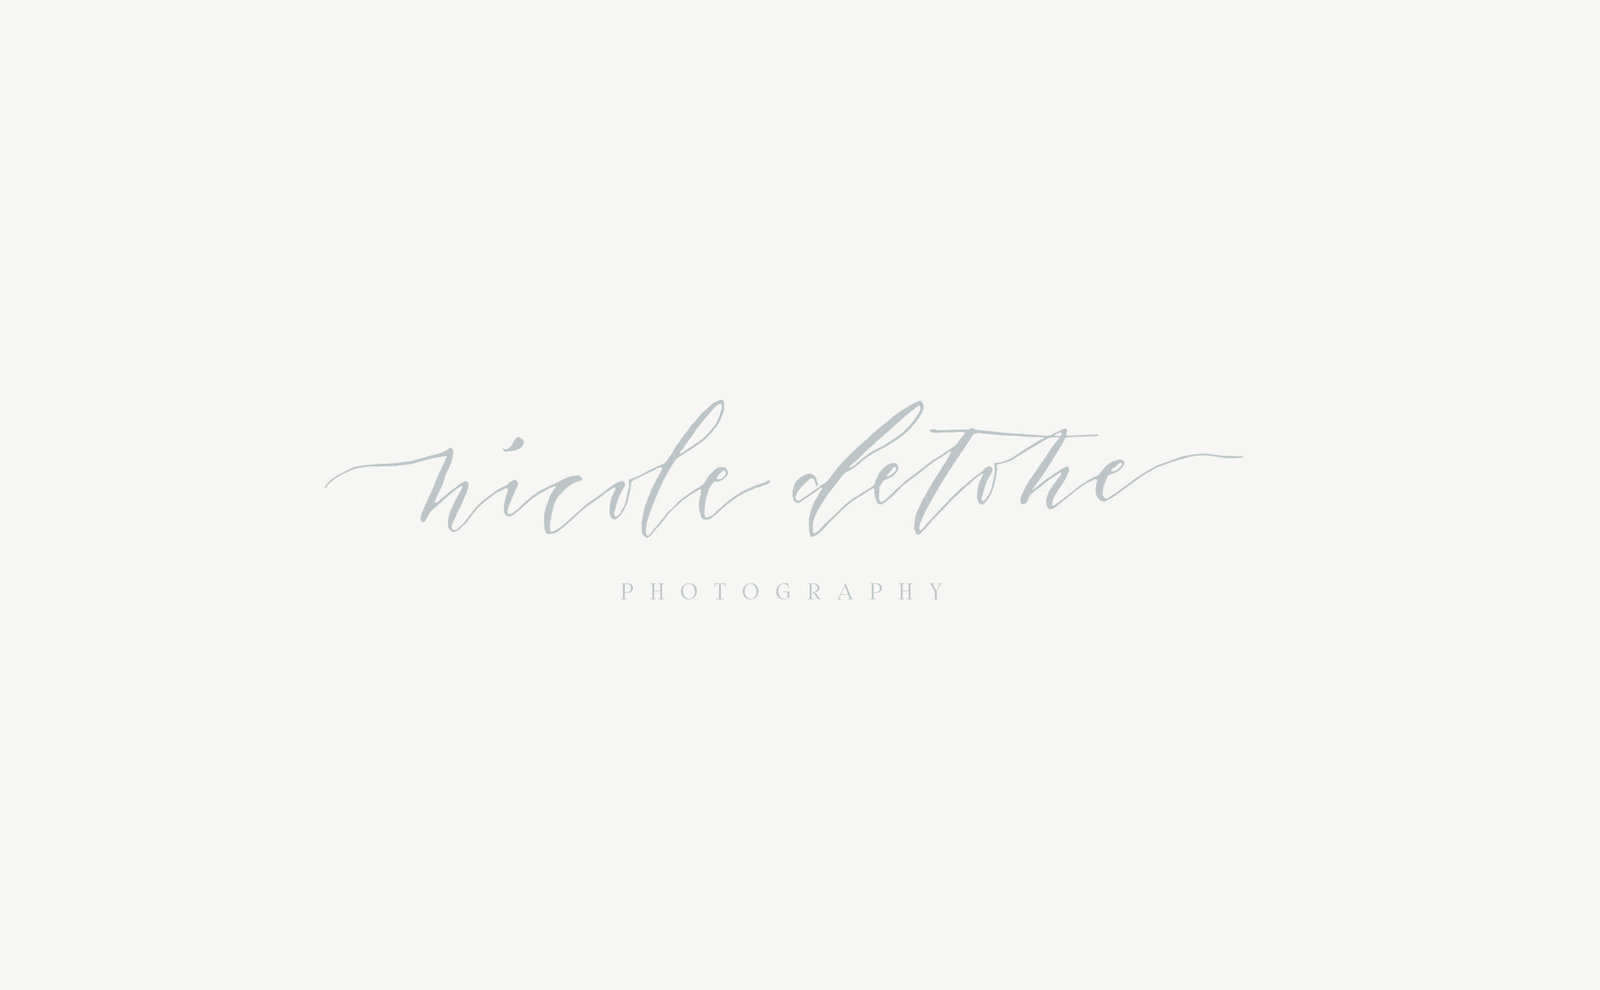 branding-for-photographers-web-design-logo-showit5-custom-fine-art-photographer-ribbon-and-ink-nicole-detone-01